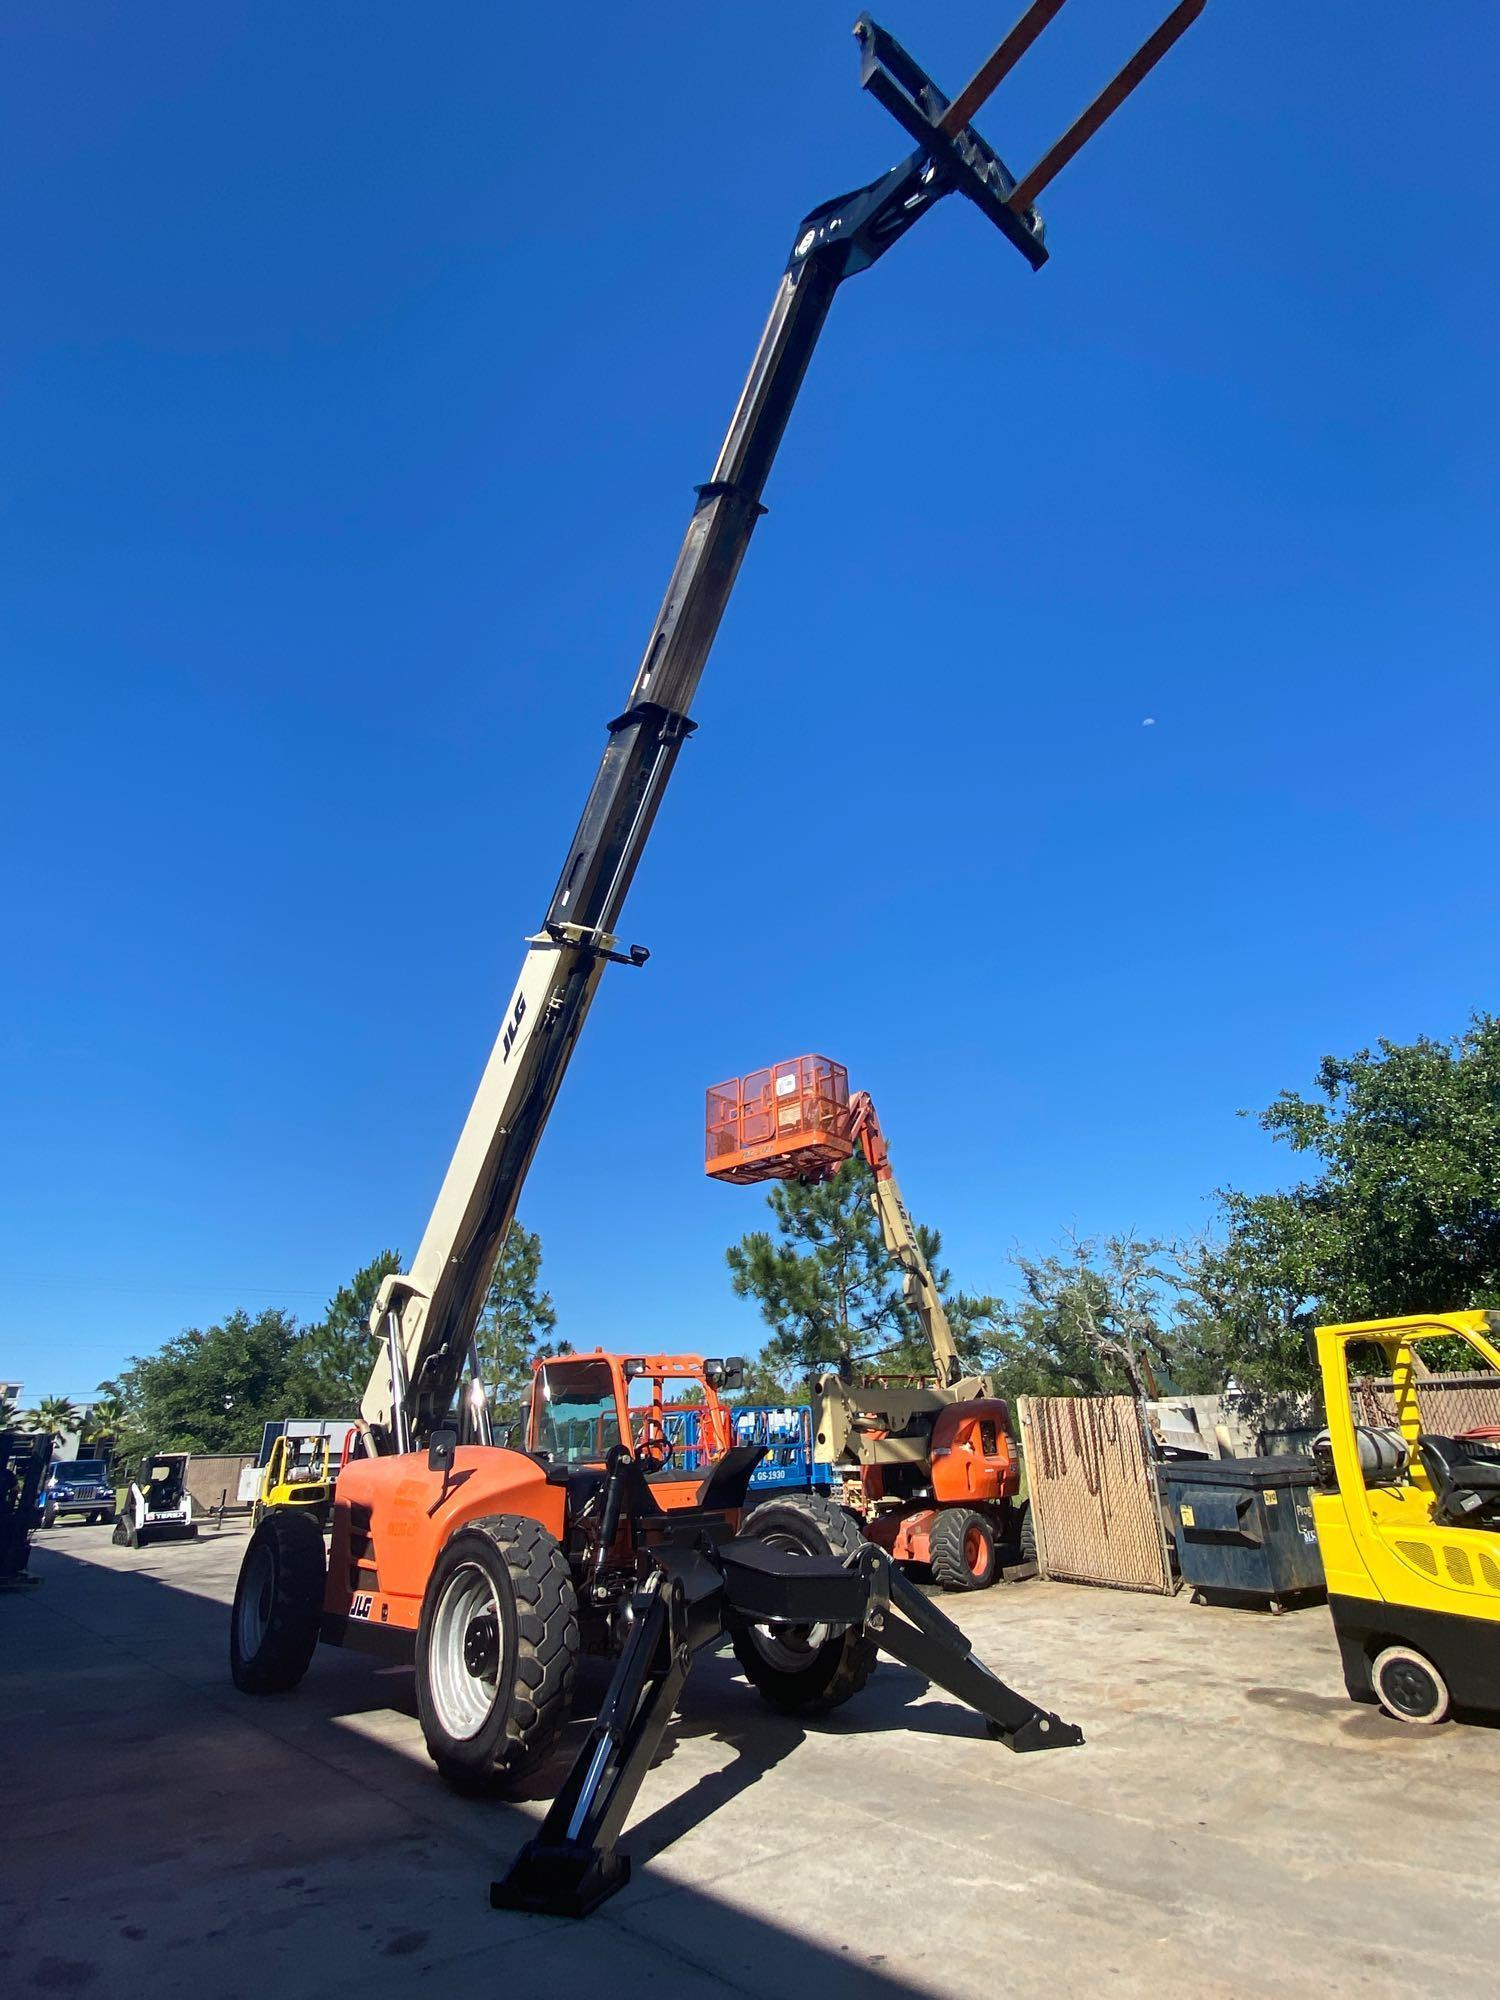 2013 JLG TELESCOPIC FORKLIFT MODEL G10-55A, 10,000 LB CAPACITY, OUTRIGGERS, 5,717.7 HOURS SHOWING, C - Image 4 of 16